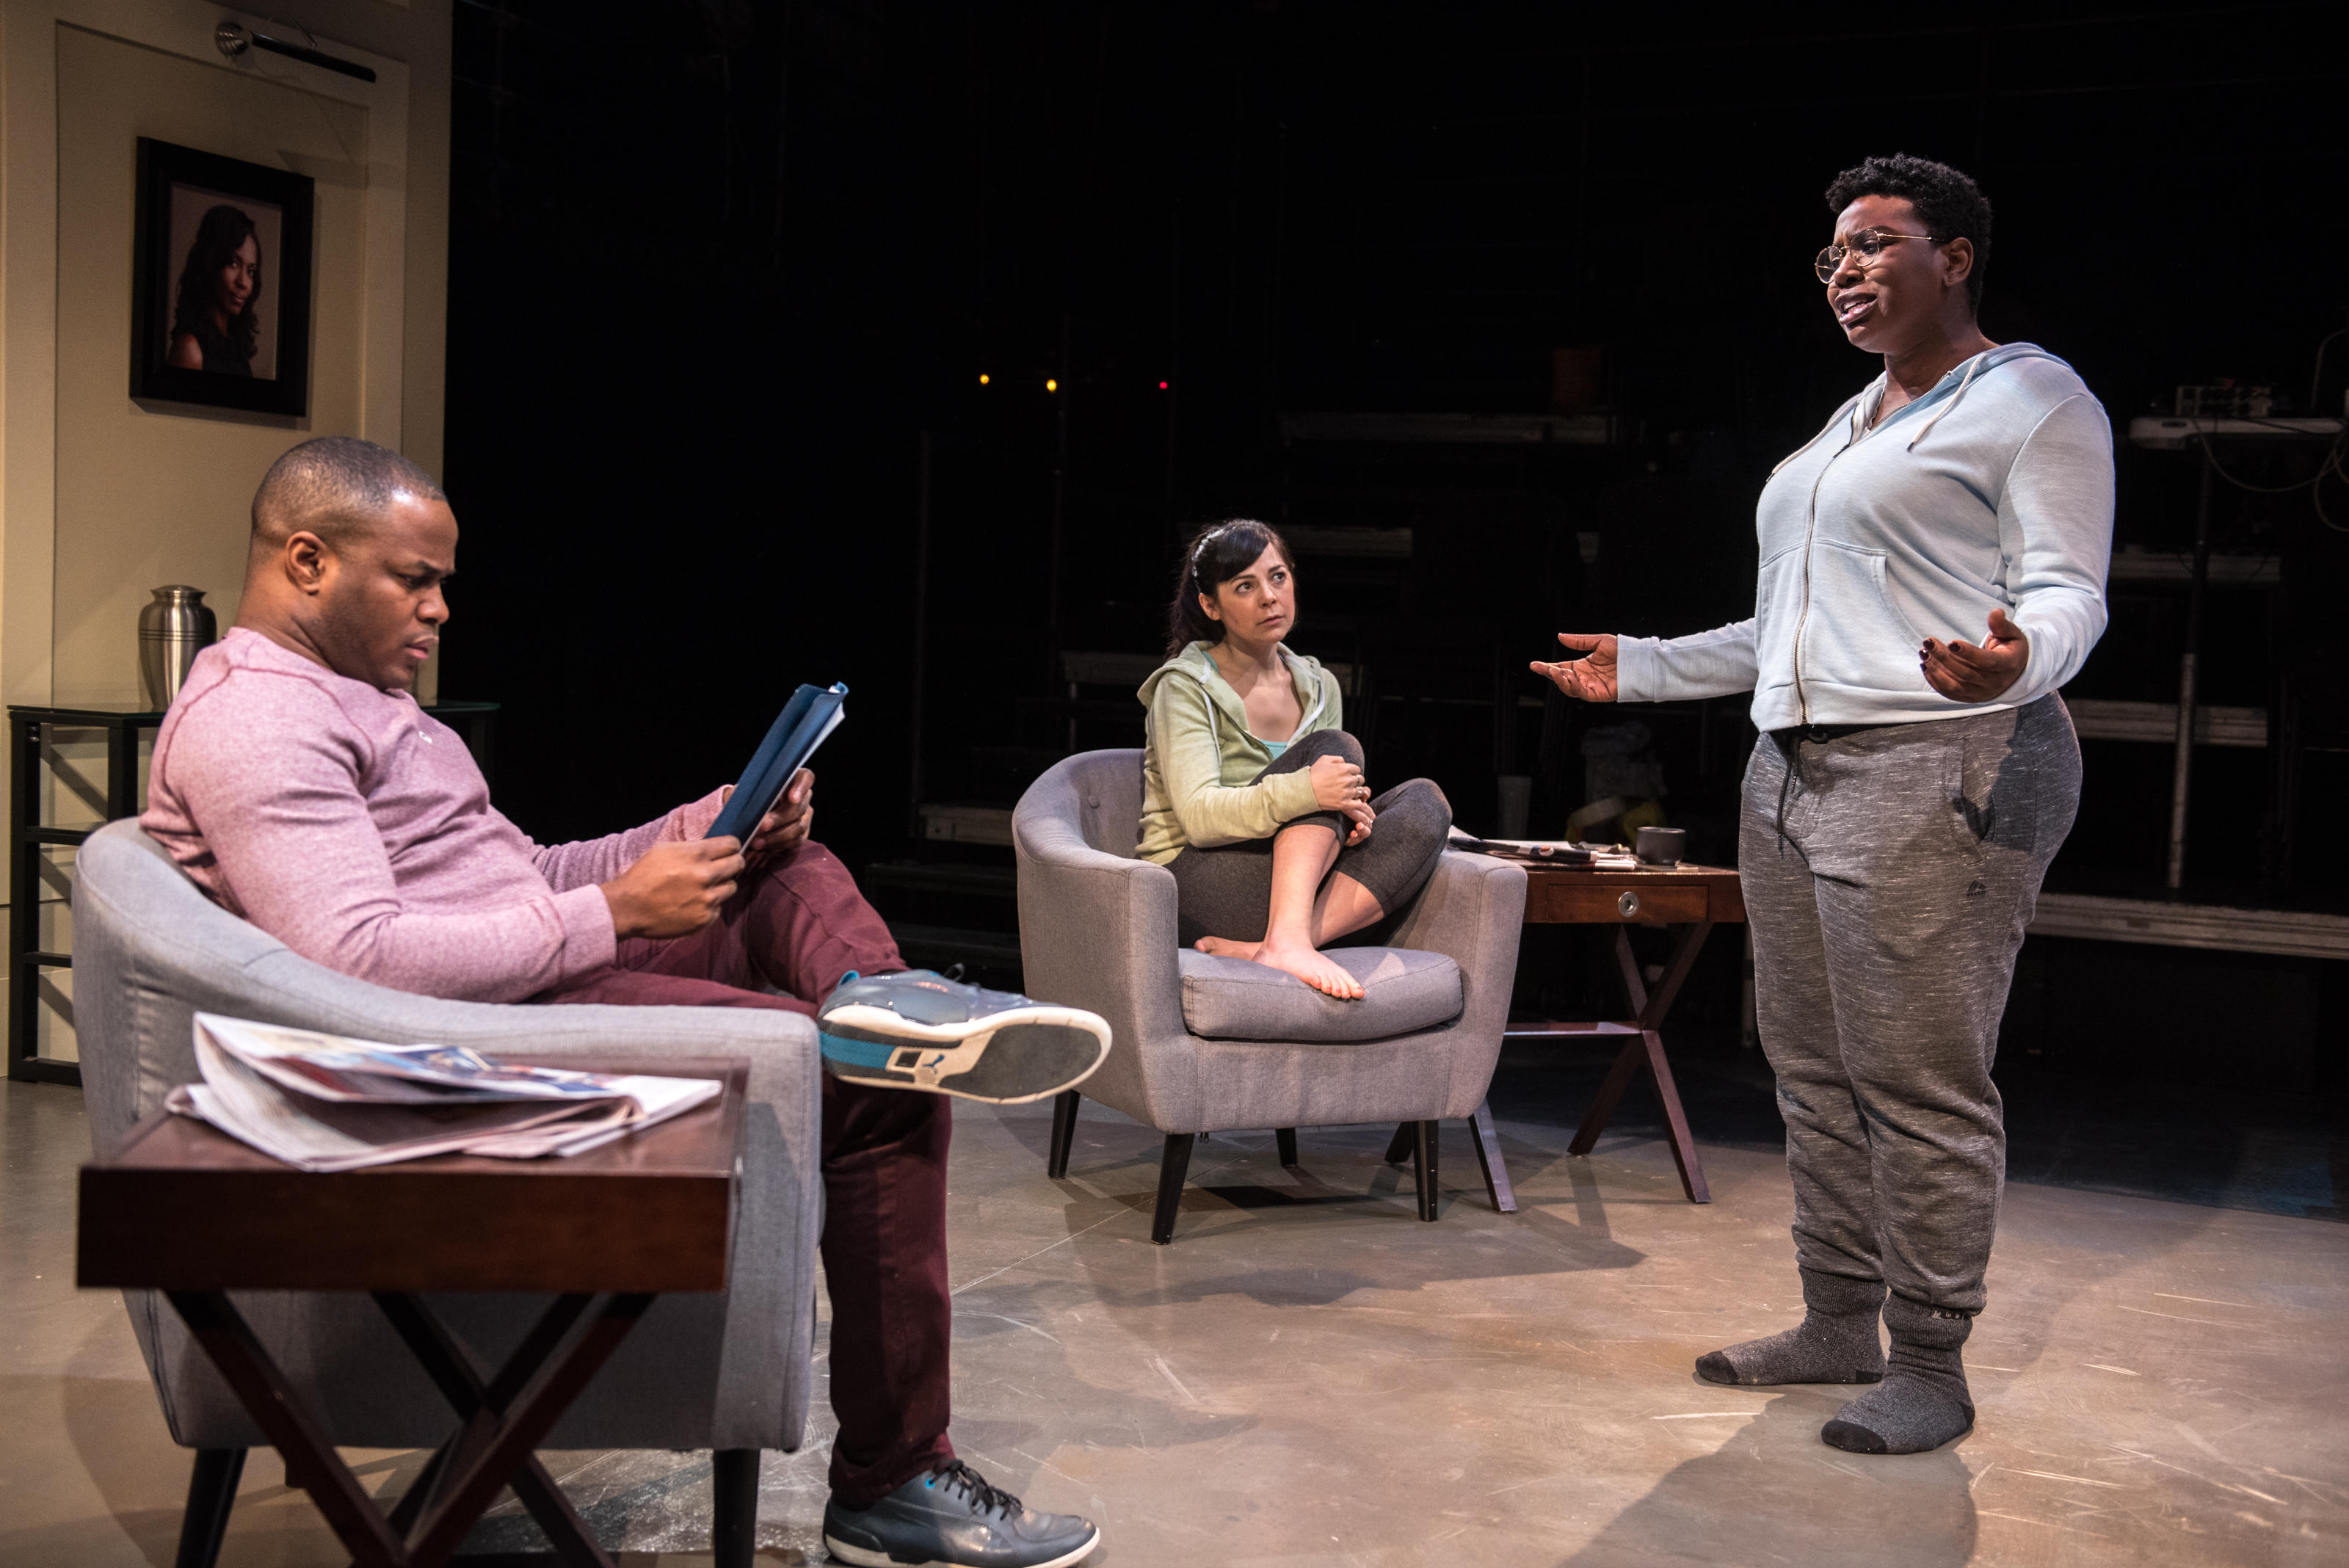 Matthew Brown, Natasha Greenblatt and Meghan Swaby - Calpurnia - photo by Dahlia Katz